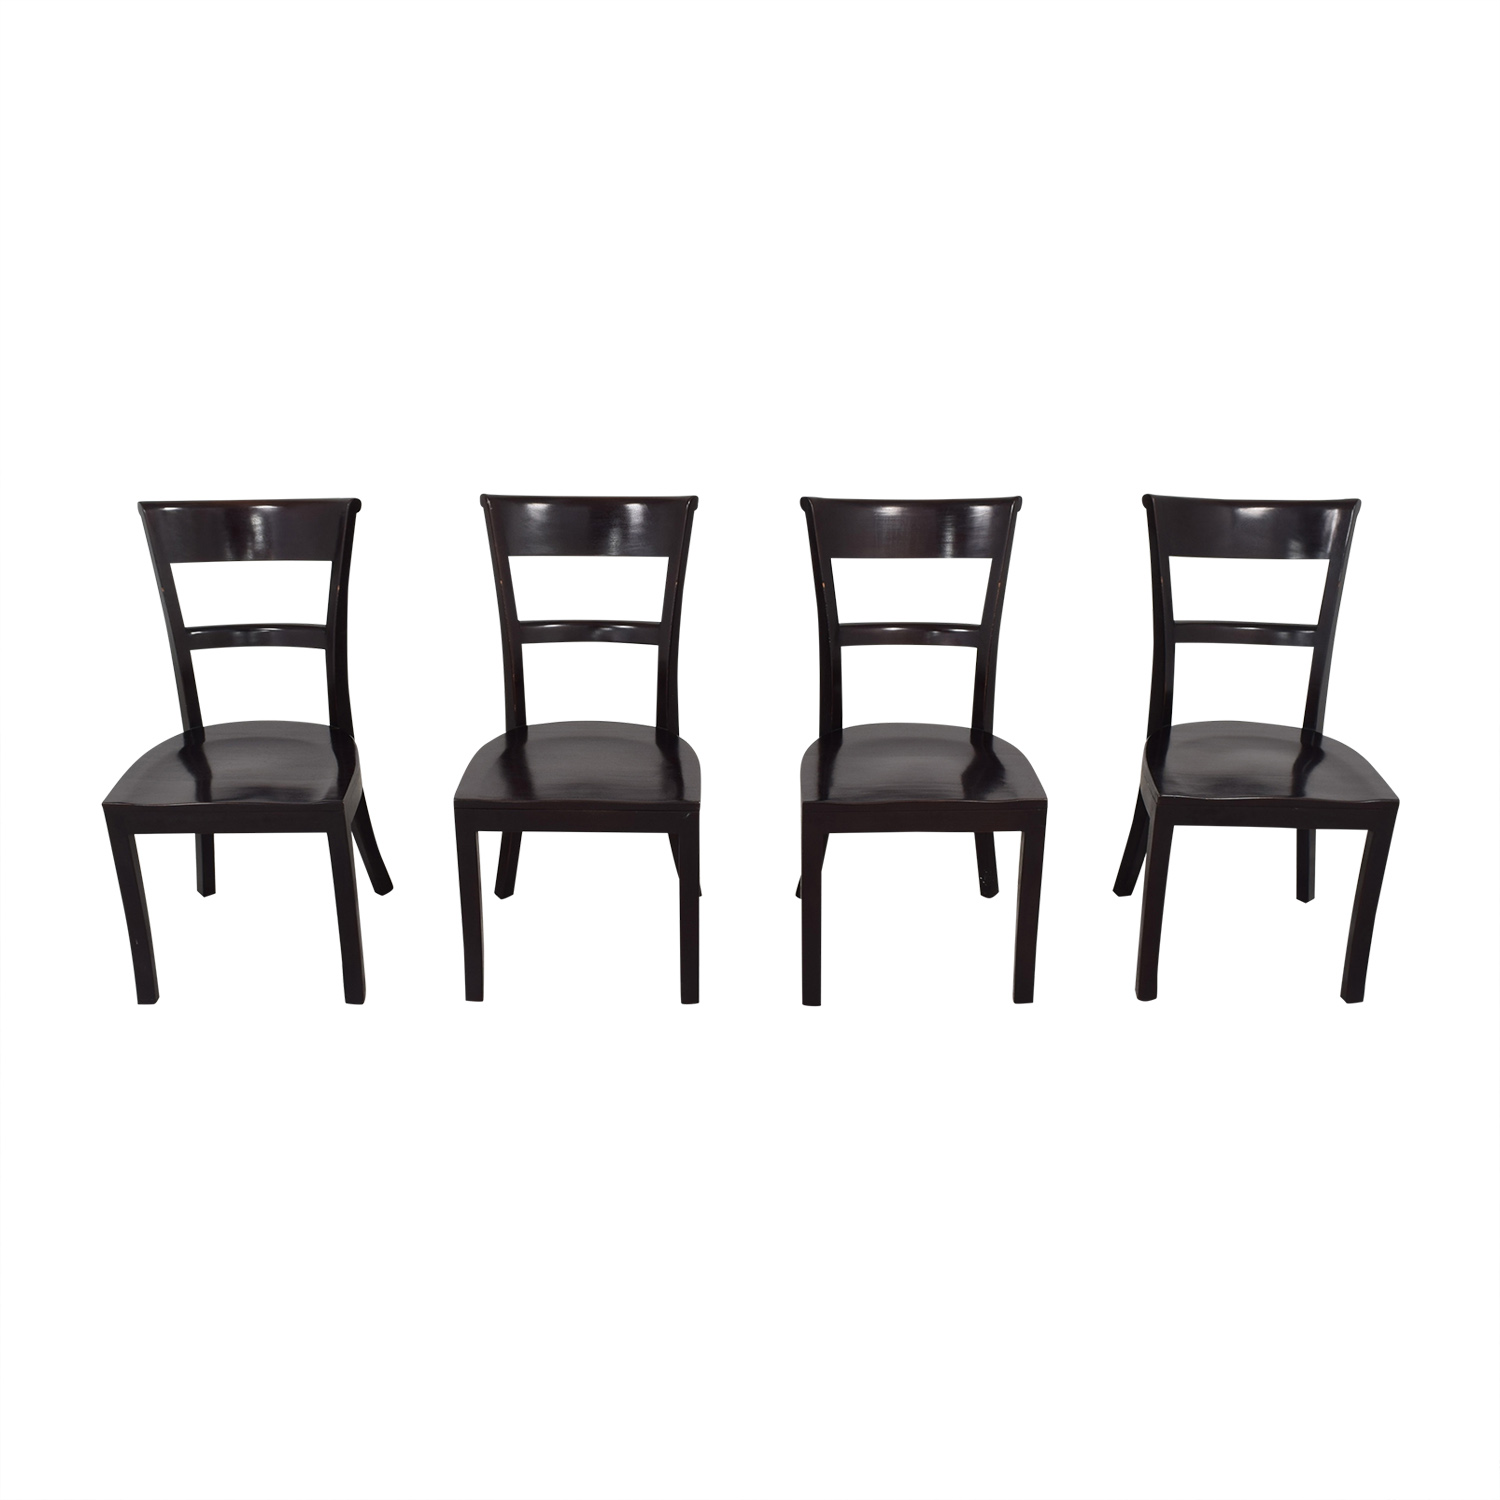 Crate & Barrel Crate & Barrel Dining Side Chairs ct